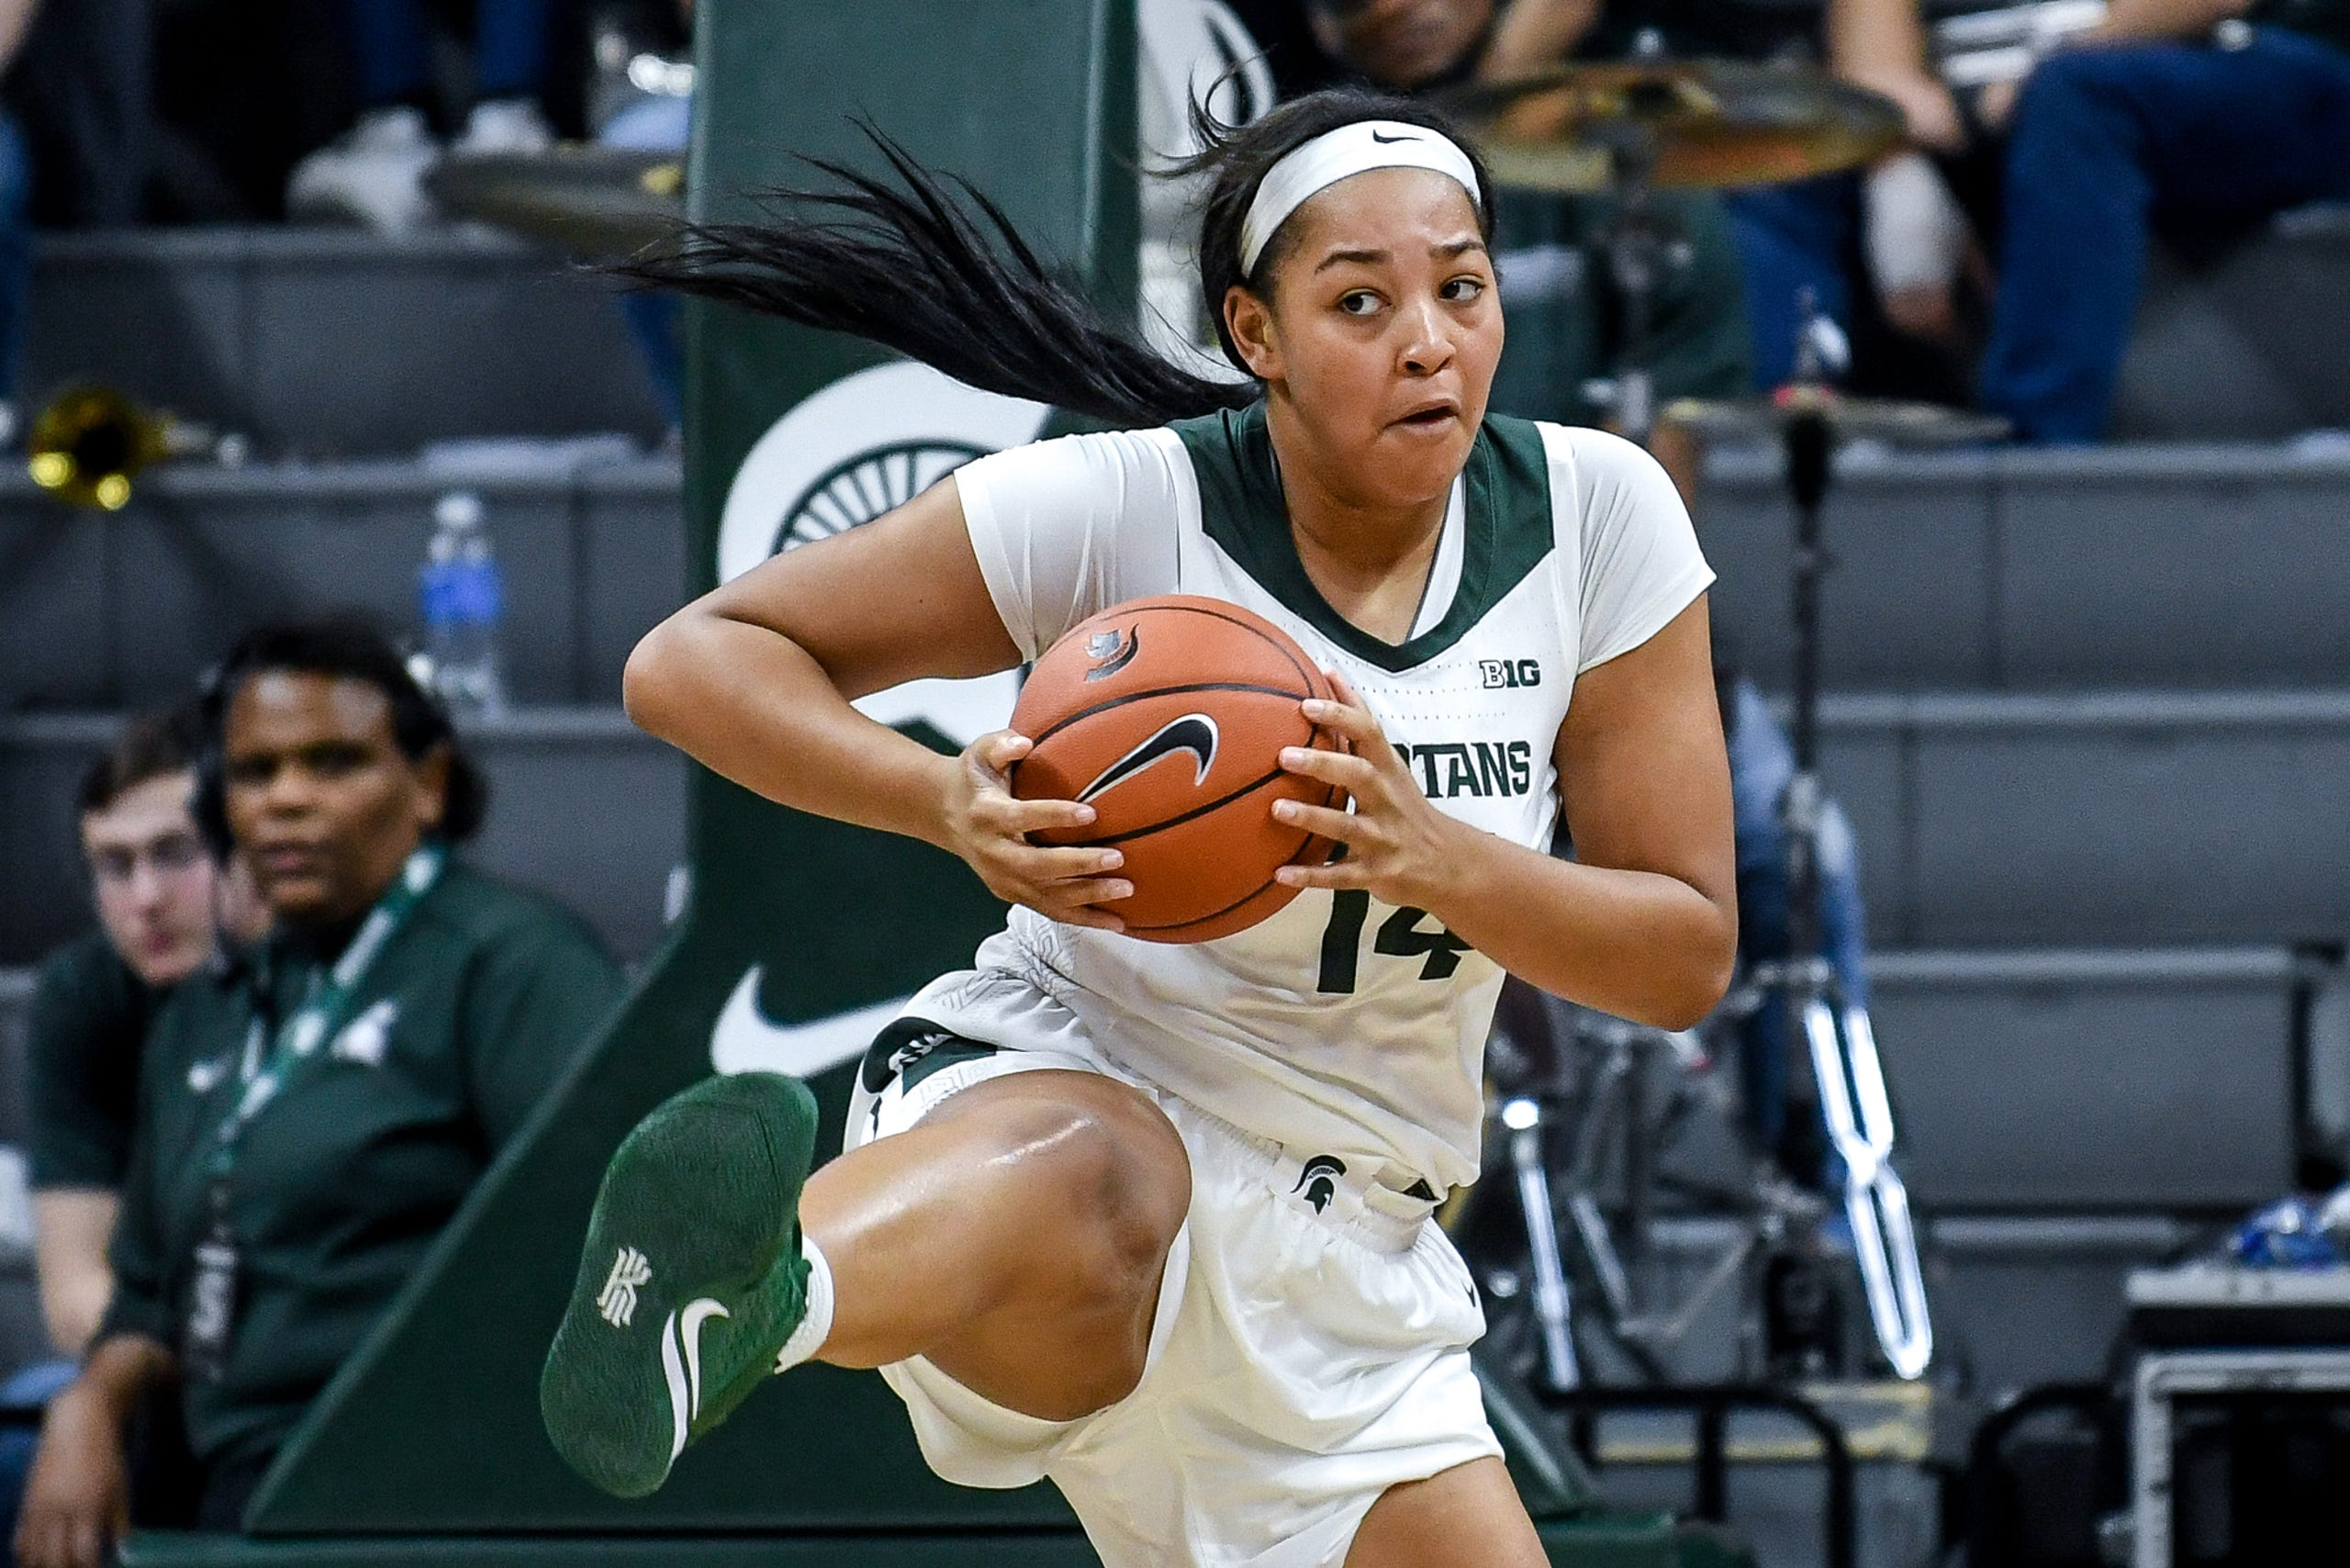 Michigan State's Taiyier Parks grabs a rebound during the  fourth quarter on Tuesday, Nov. 5, 2019, at the Breslin Center in East Lansing.